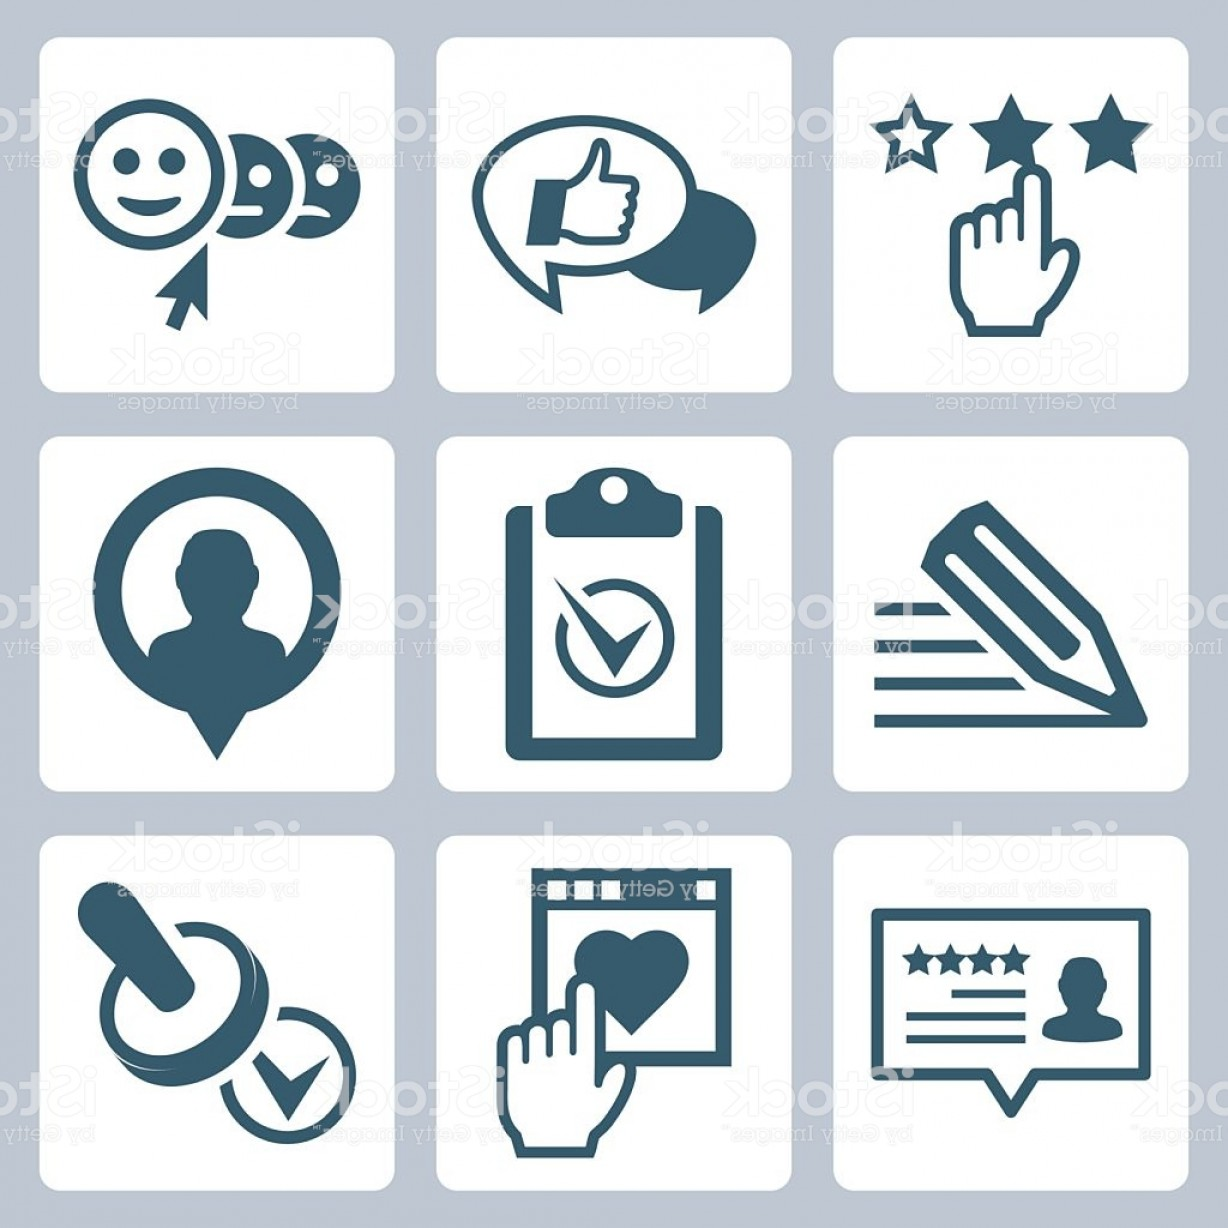 320 Vector: Vector Customer Service And Testimonials Related Icon Set Gm